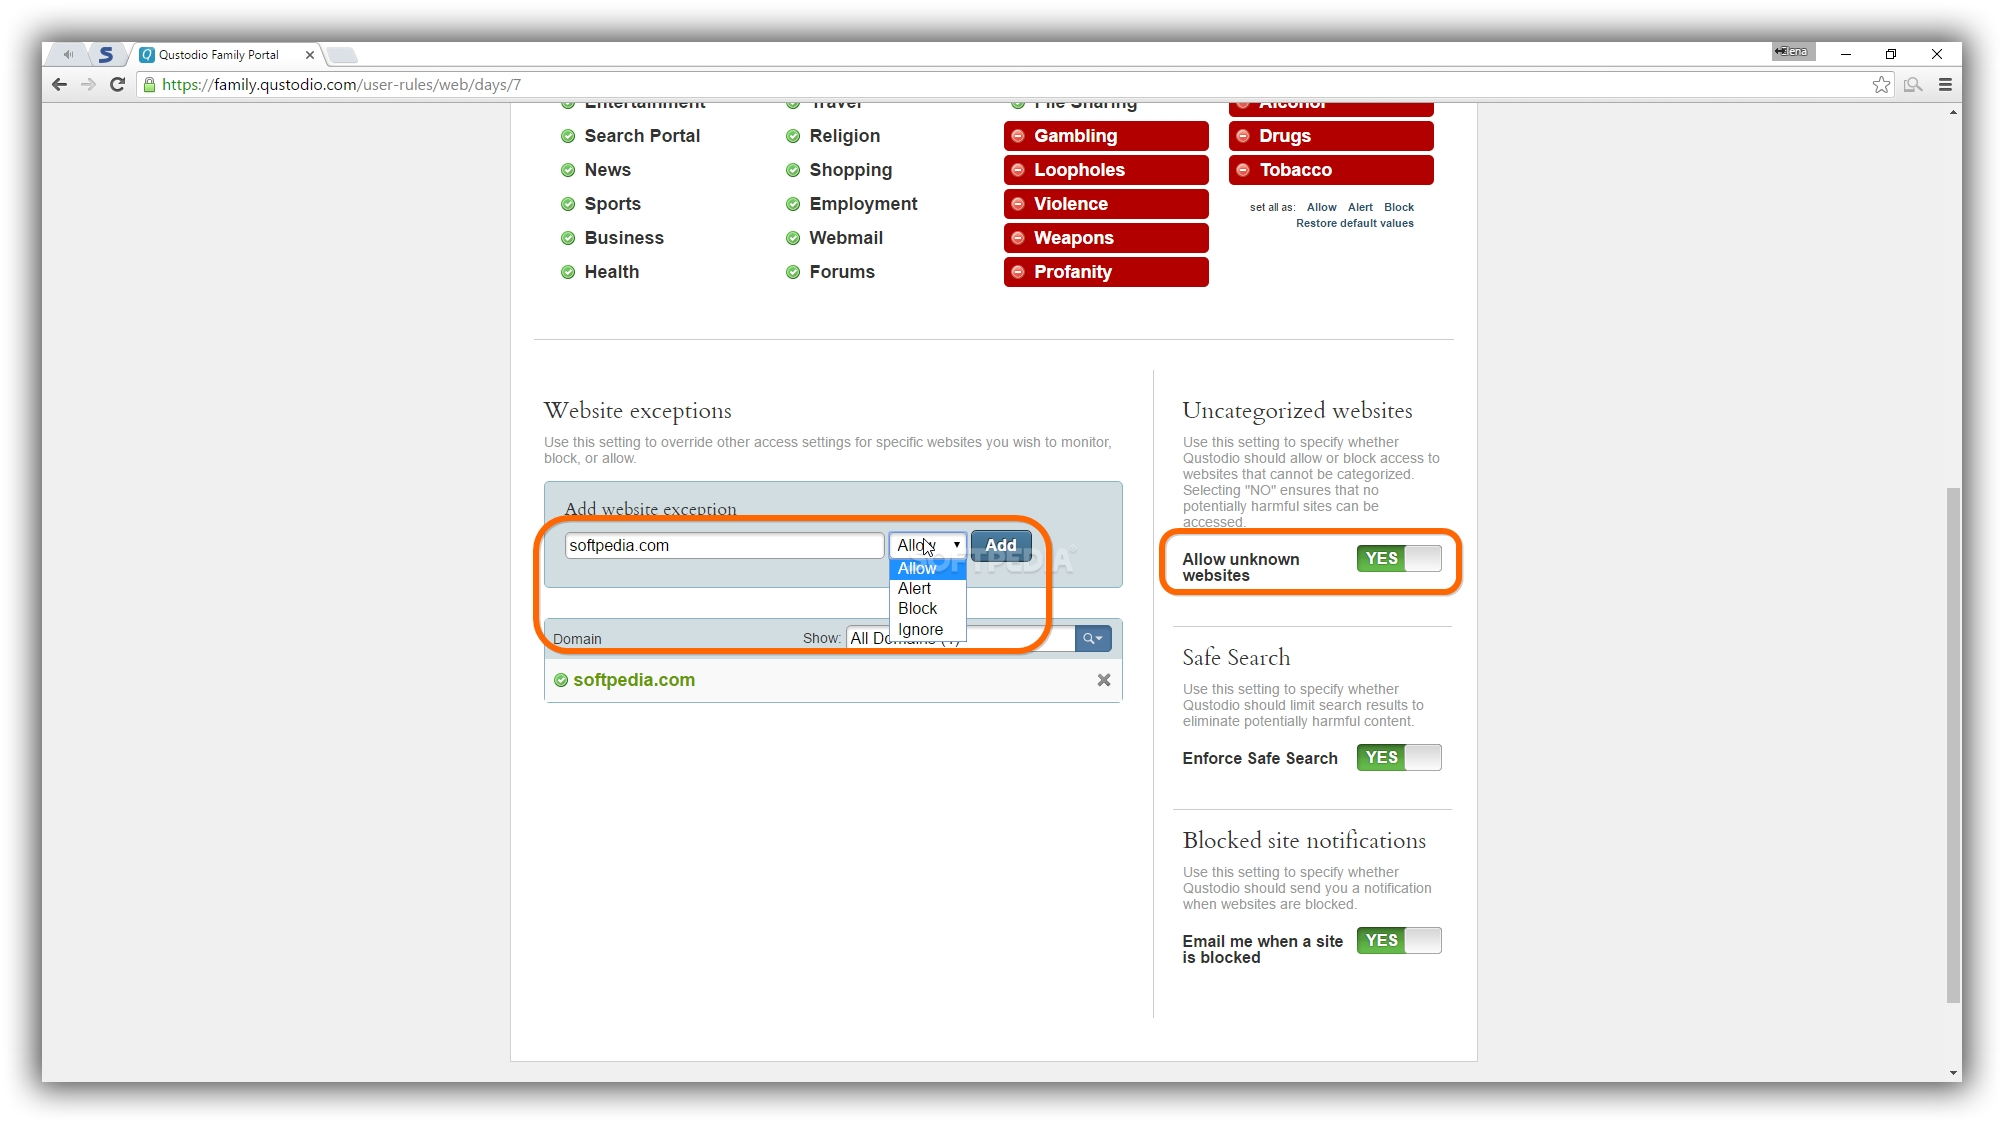 ... you can set Website exceptions to Allow, Alert, Block or Ignore ...